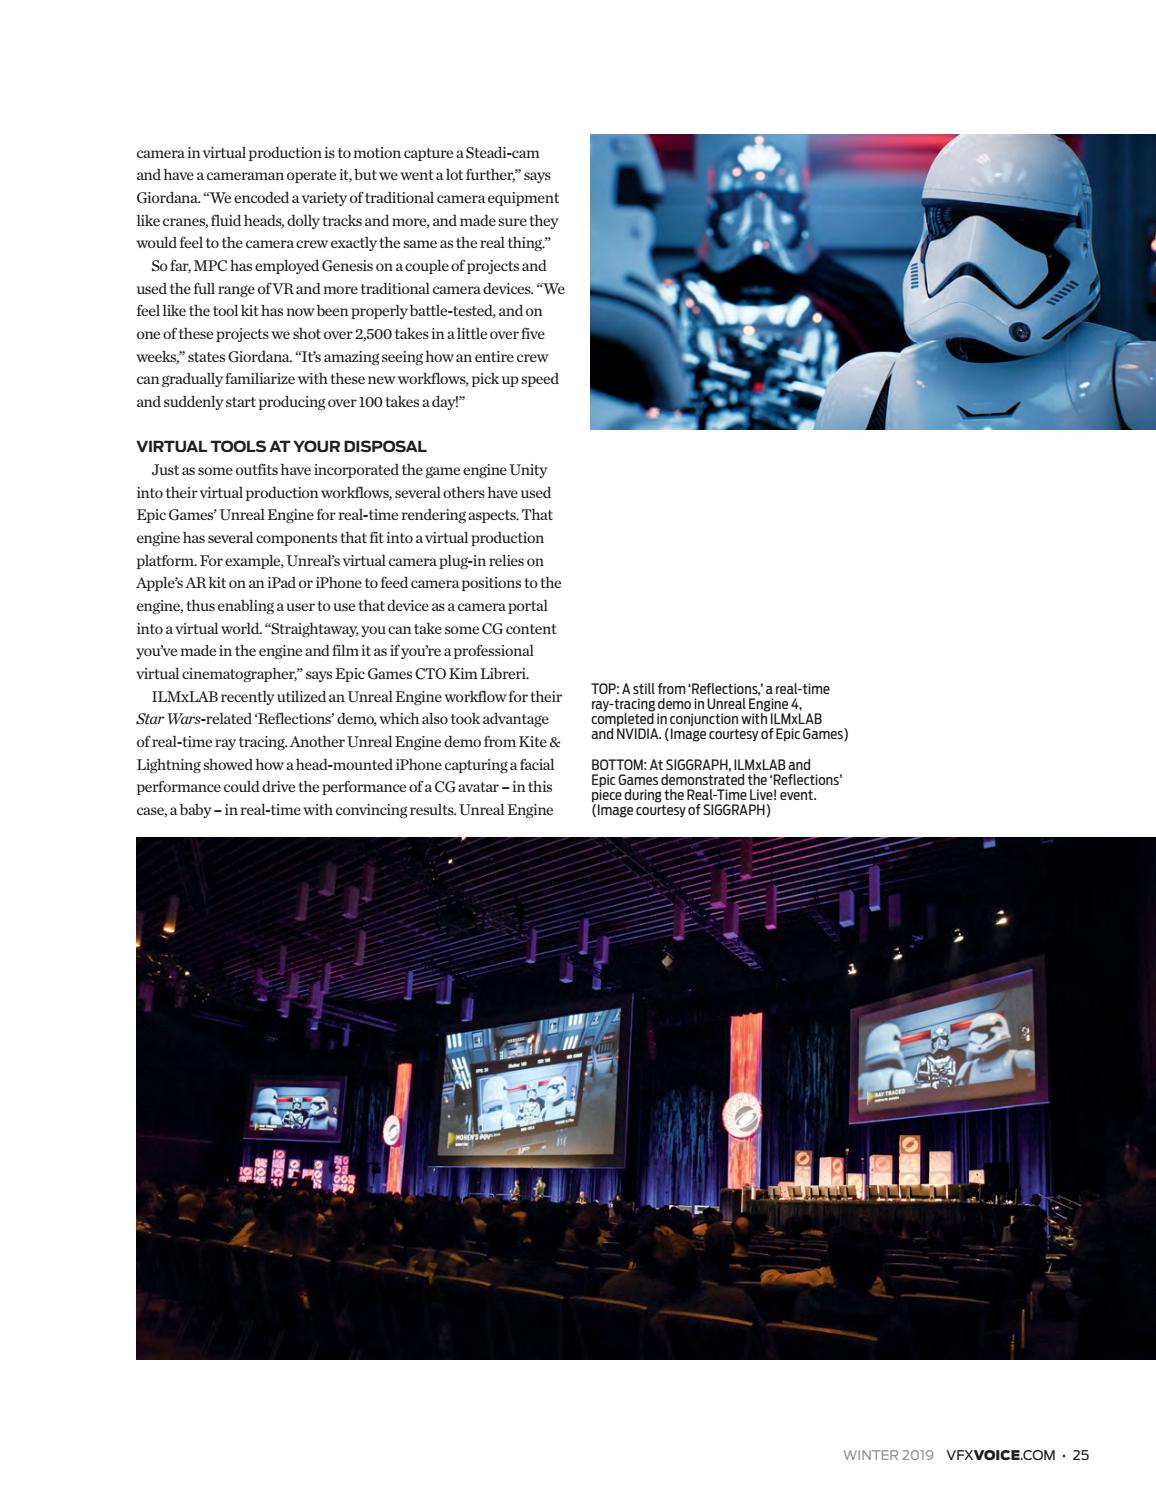 VFX Voice - Winter 2019 Issue by Visual Effects Society - issuu